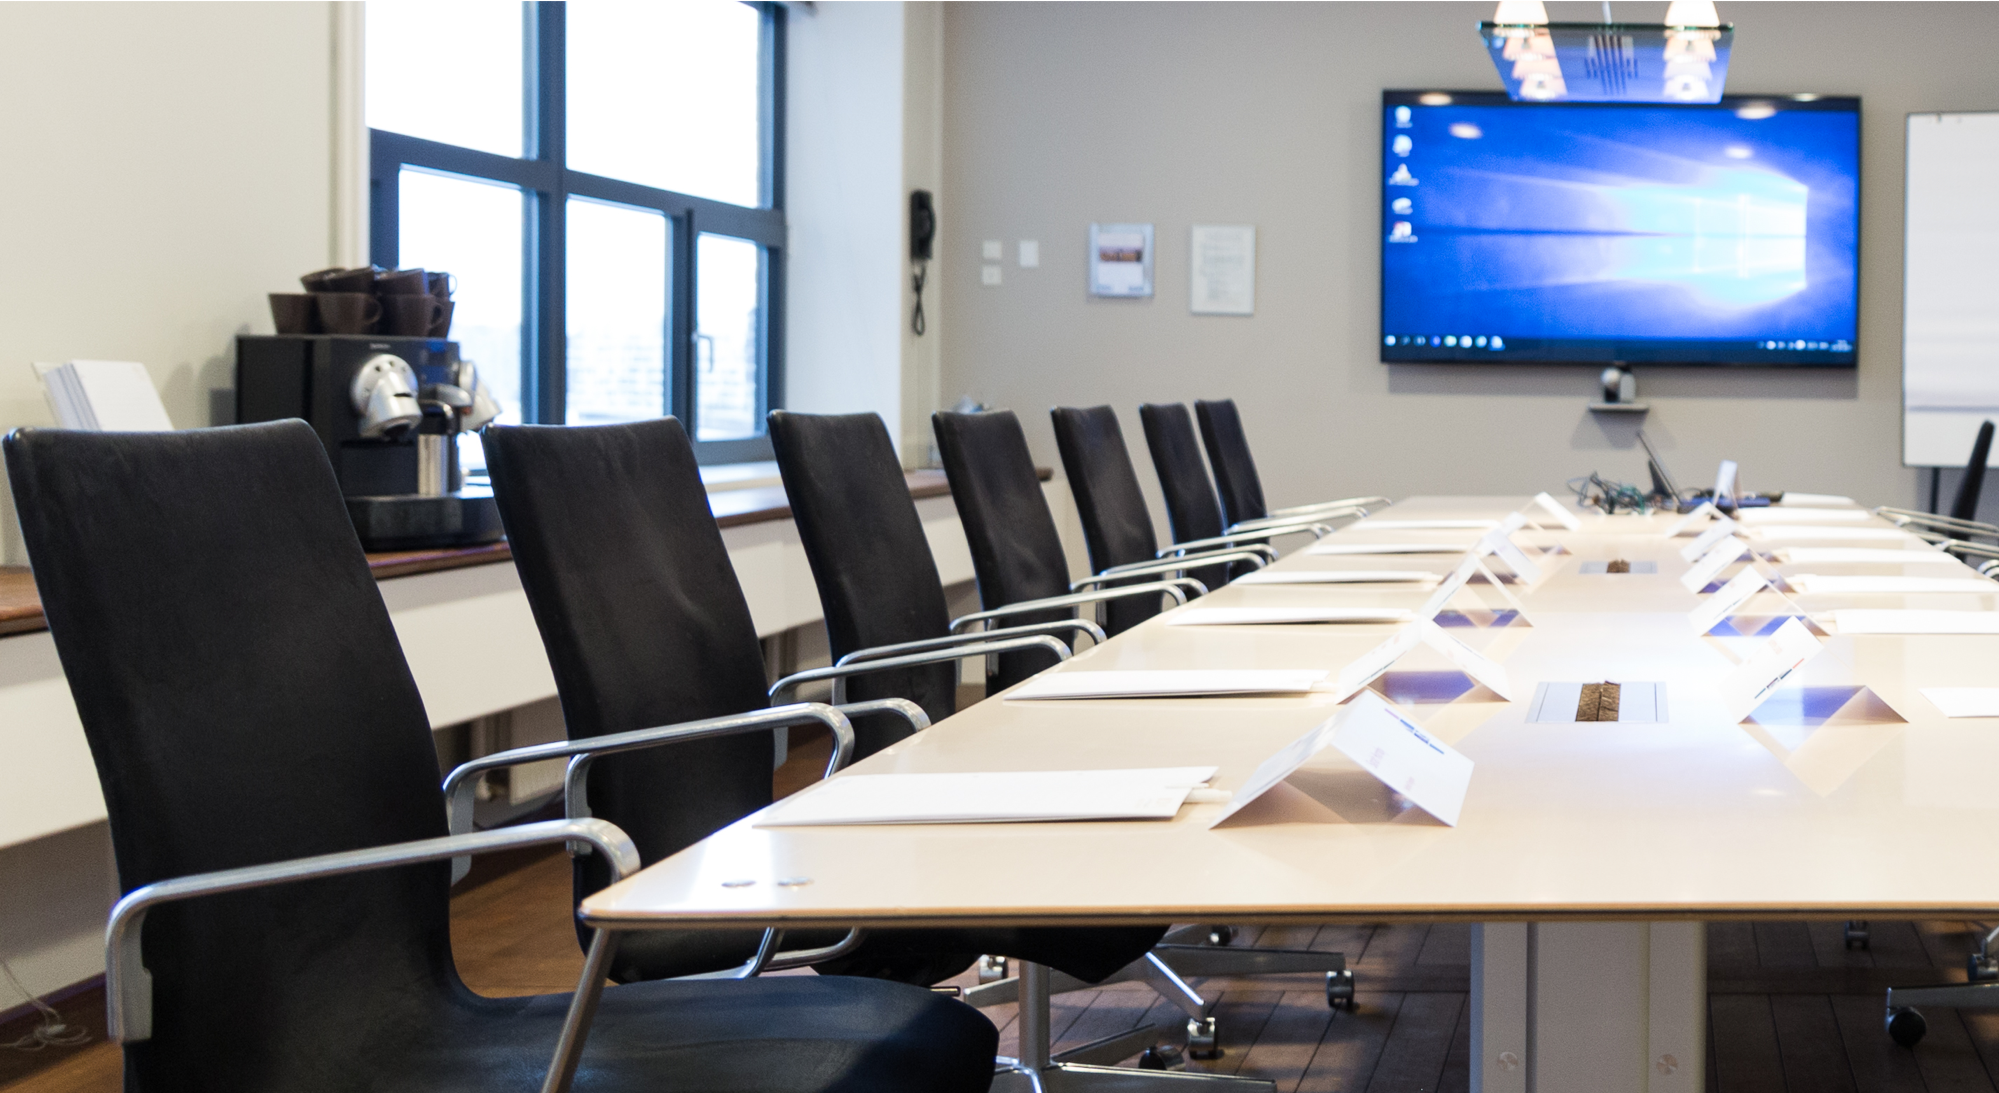 Meetings and events, welcome to the C-suite